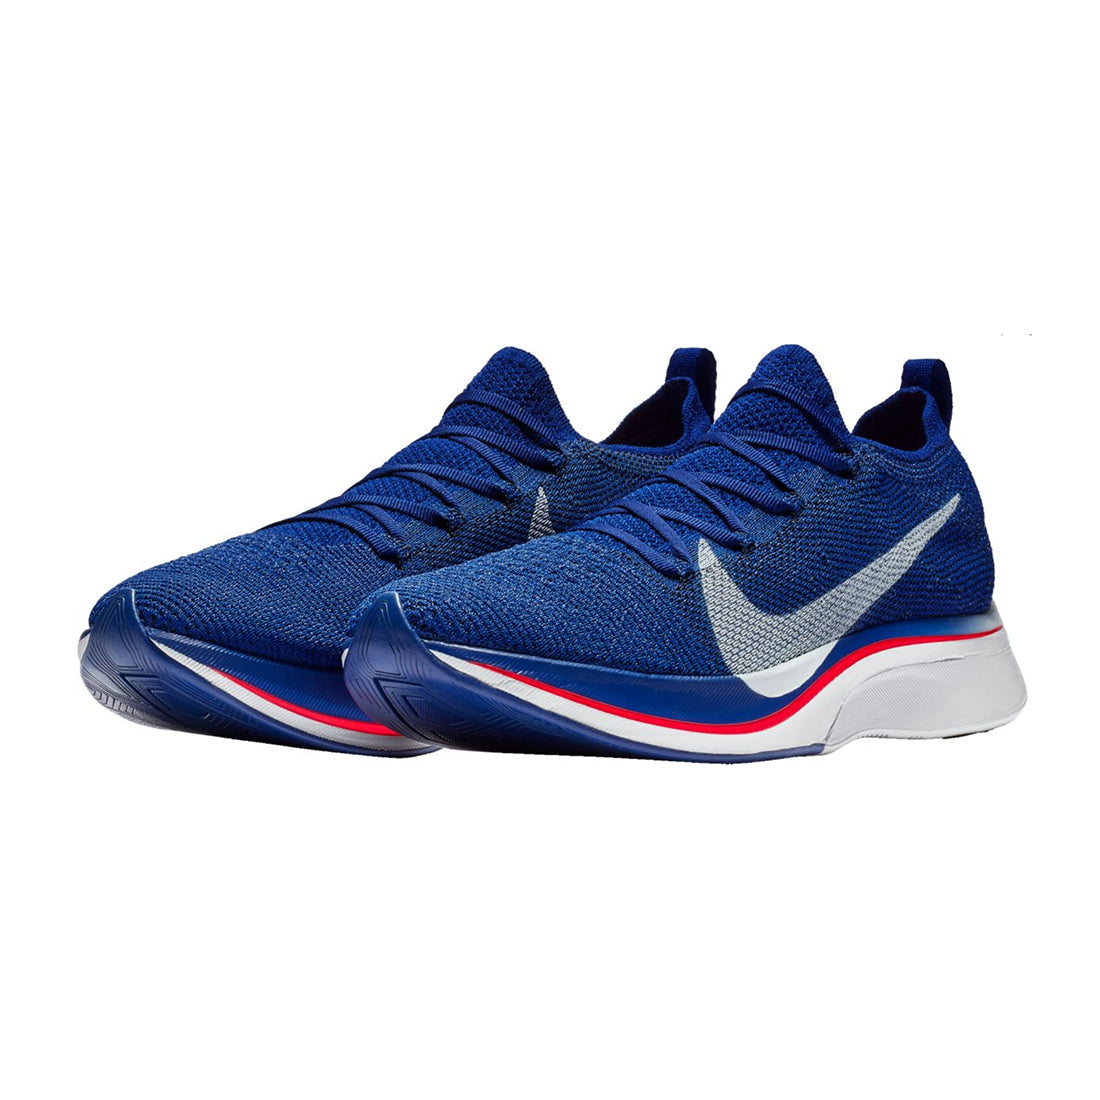 Nike VaporFly Flyknit 4% - Deep Royal Blue Red Orbit Black Ghost ... 7a22dd7df